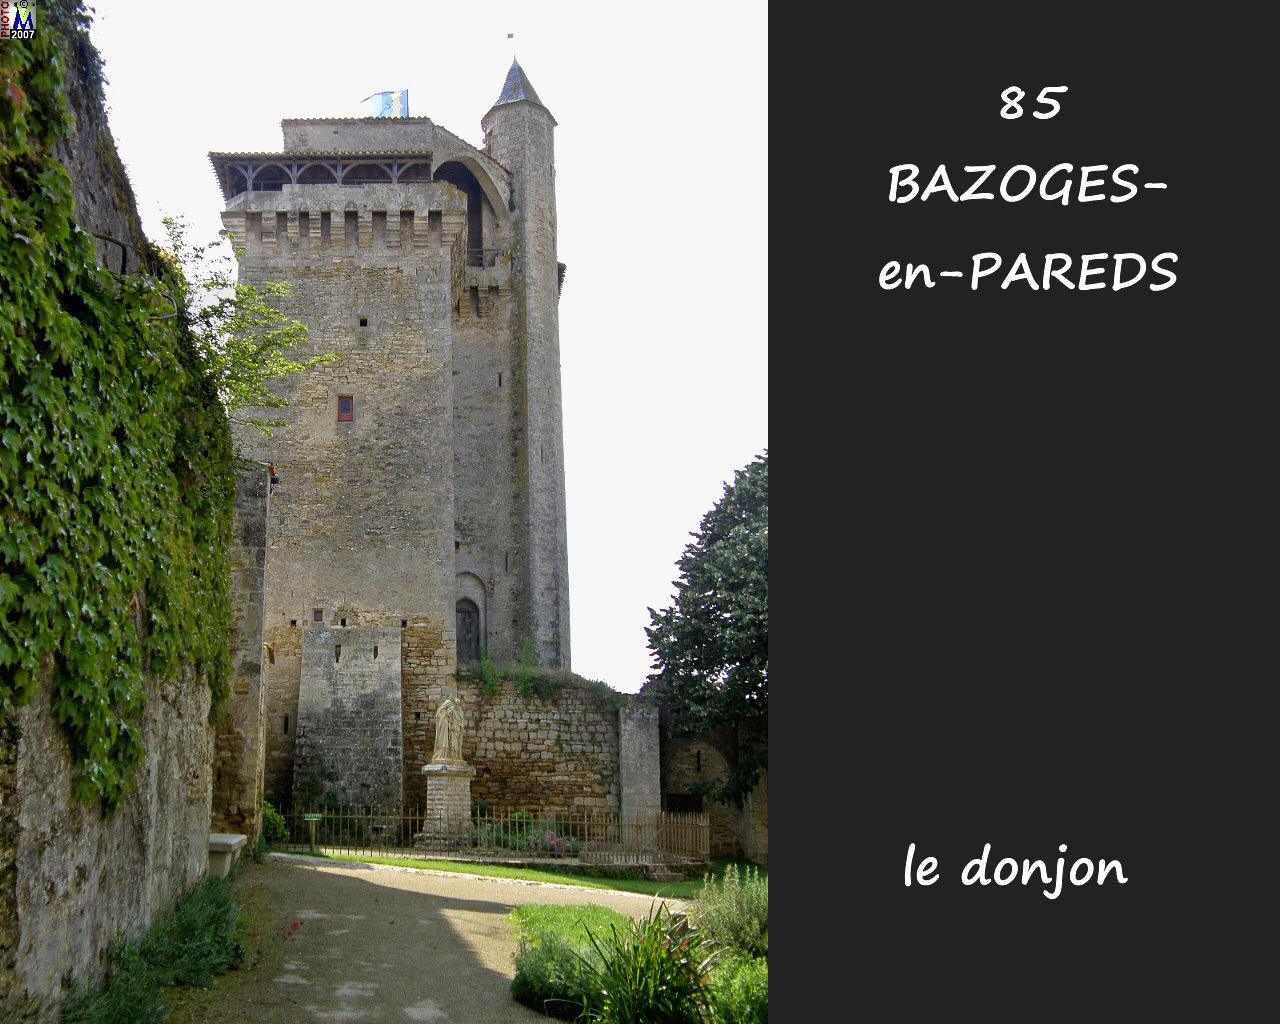 85BAZOGES-PAREDS_donjon_102.jpg